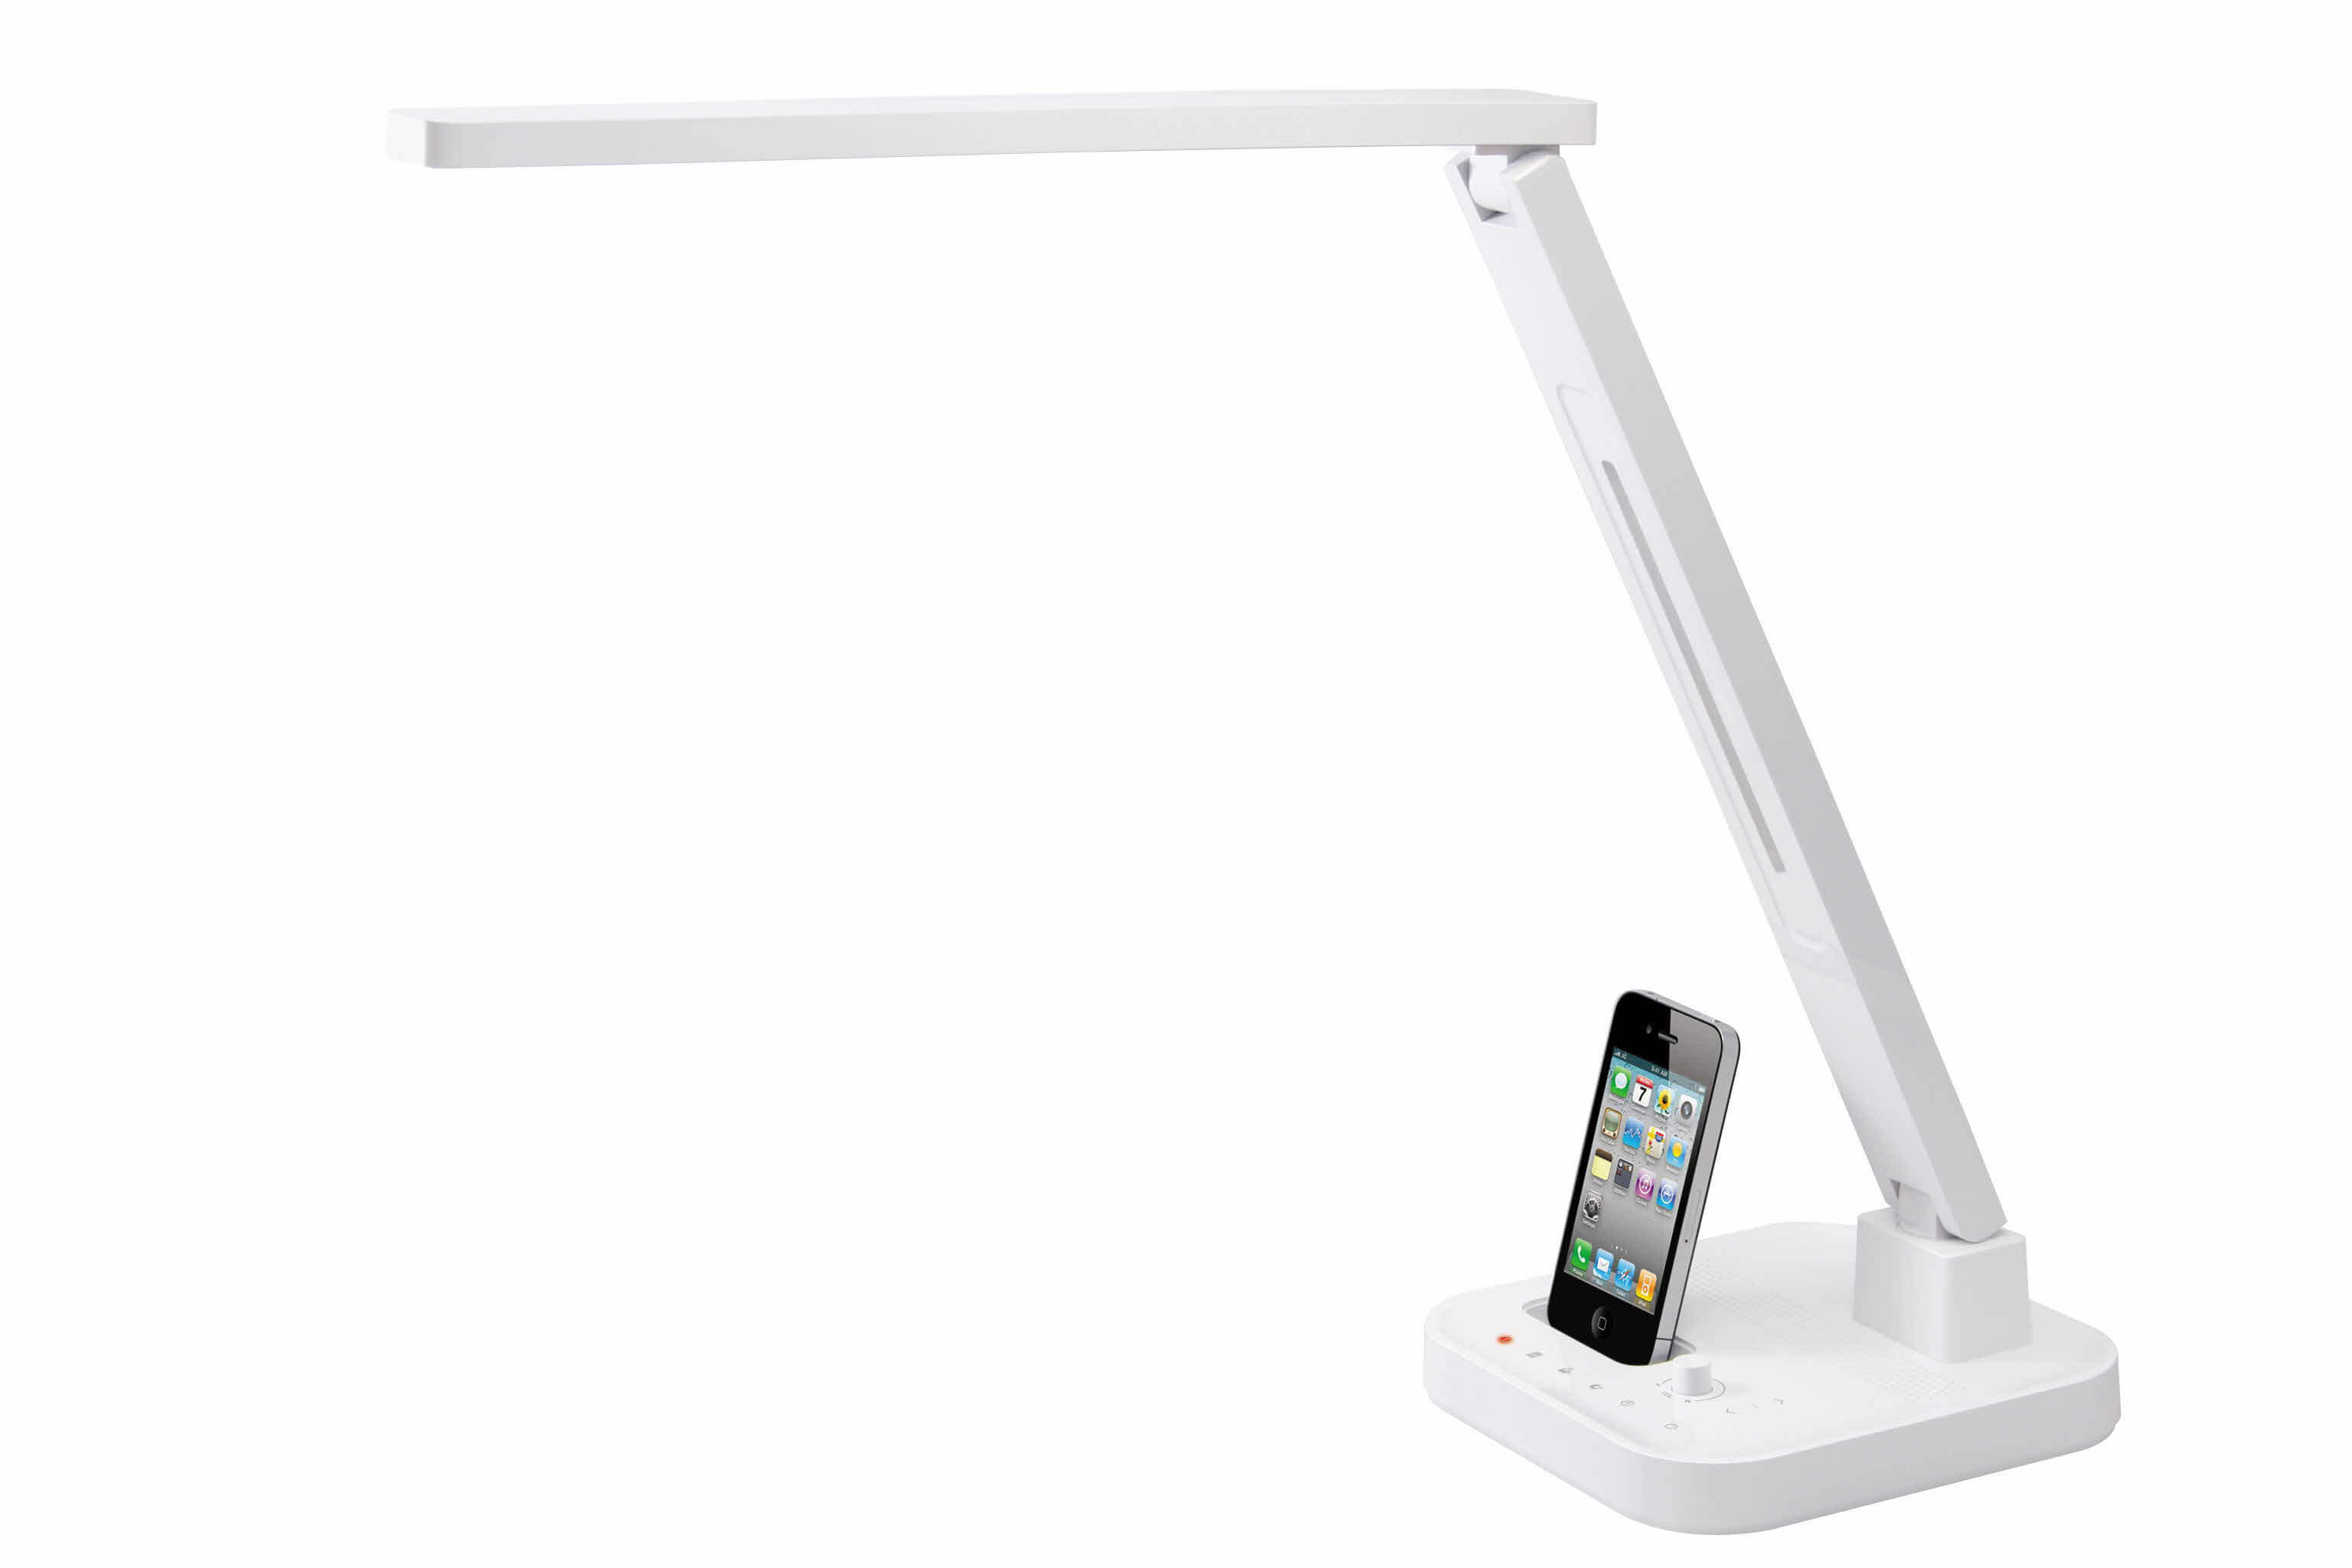 Best ideas about Led Desk Lamp . Save or Pin The Best LED Desk Lamps 2018 Reactual Now.